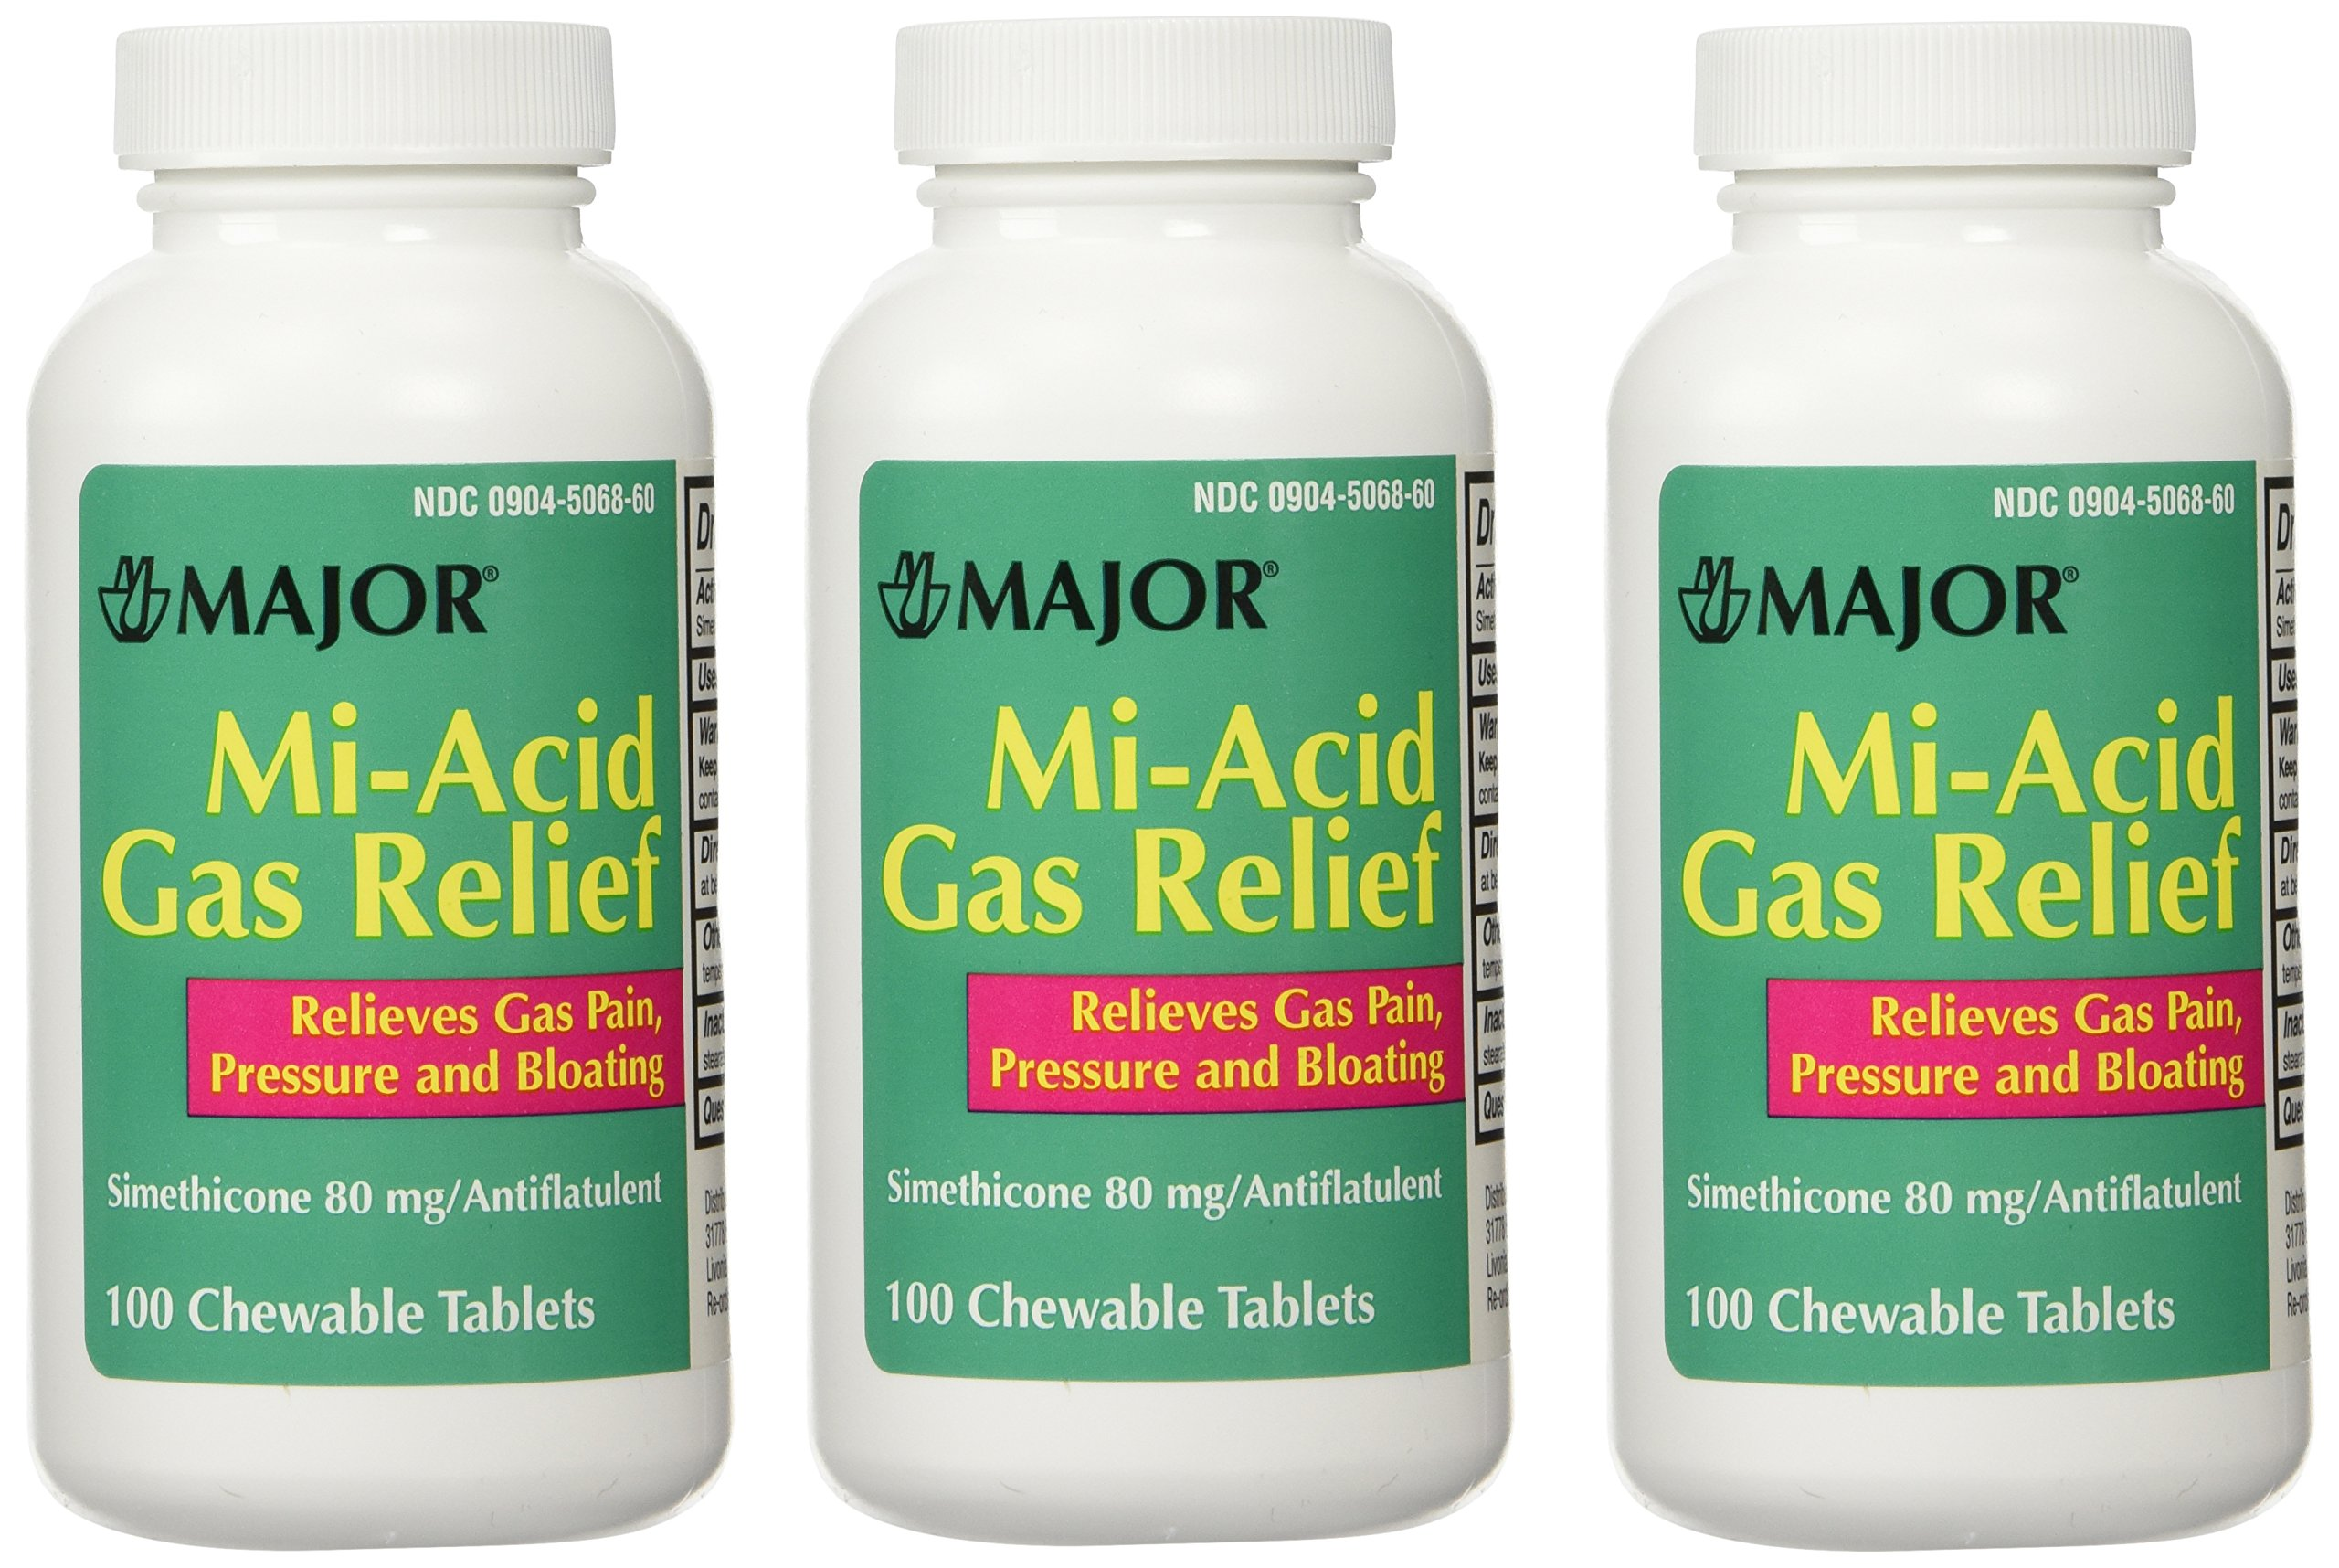 Simethicone 80mg Chewable Anti-Gas Generic for Mylanta Gas 3 PACK 3 X 100 ea. Total 300 Chewable Tablets